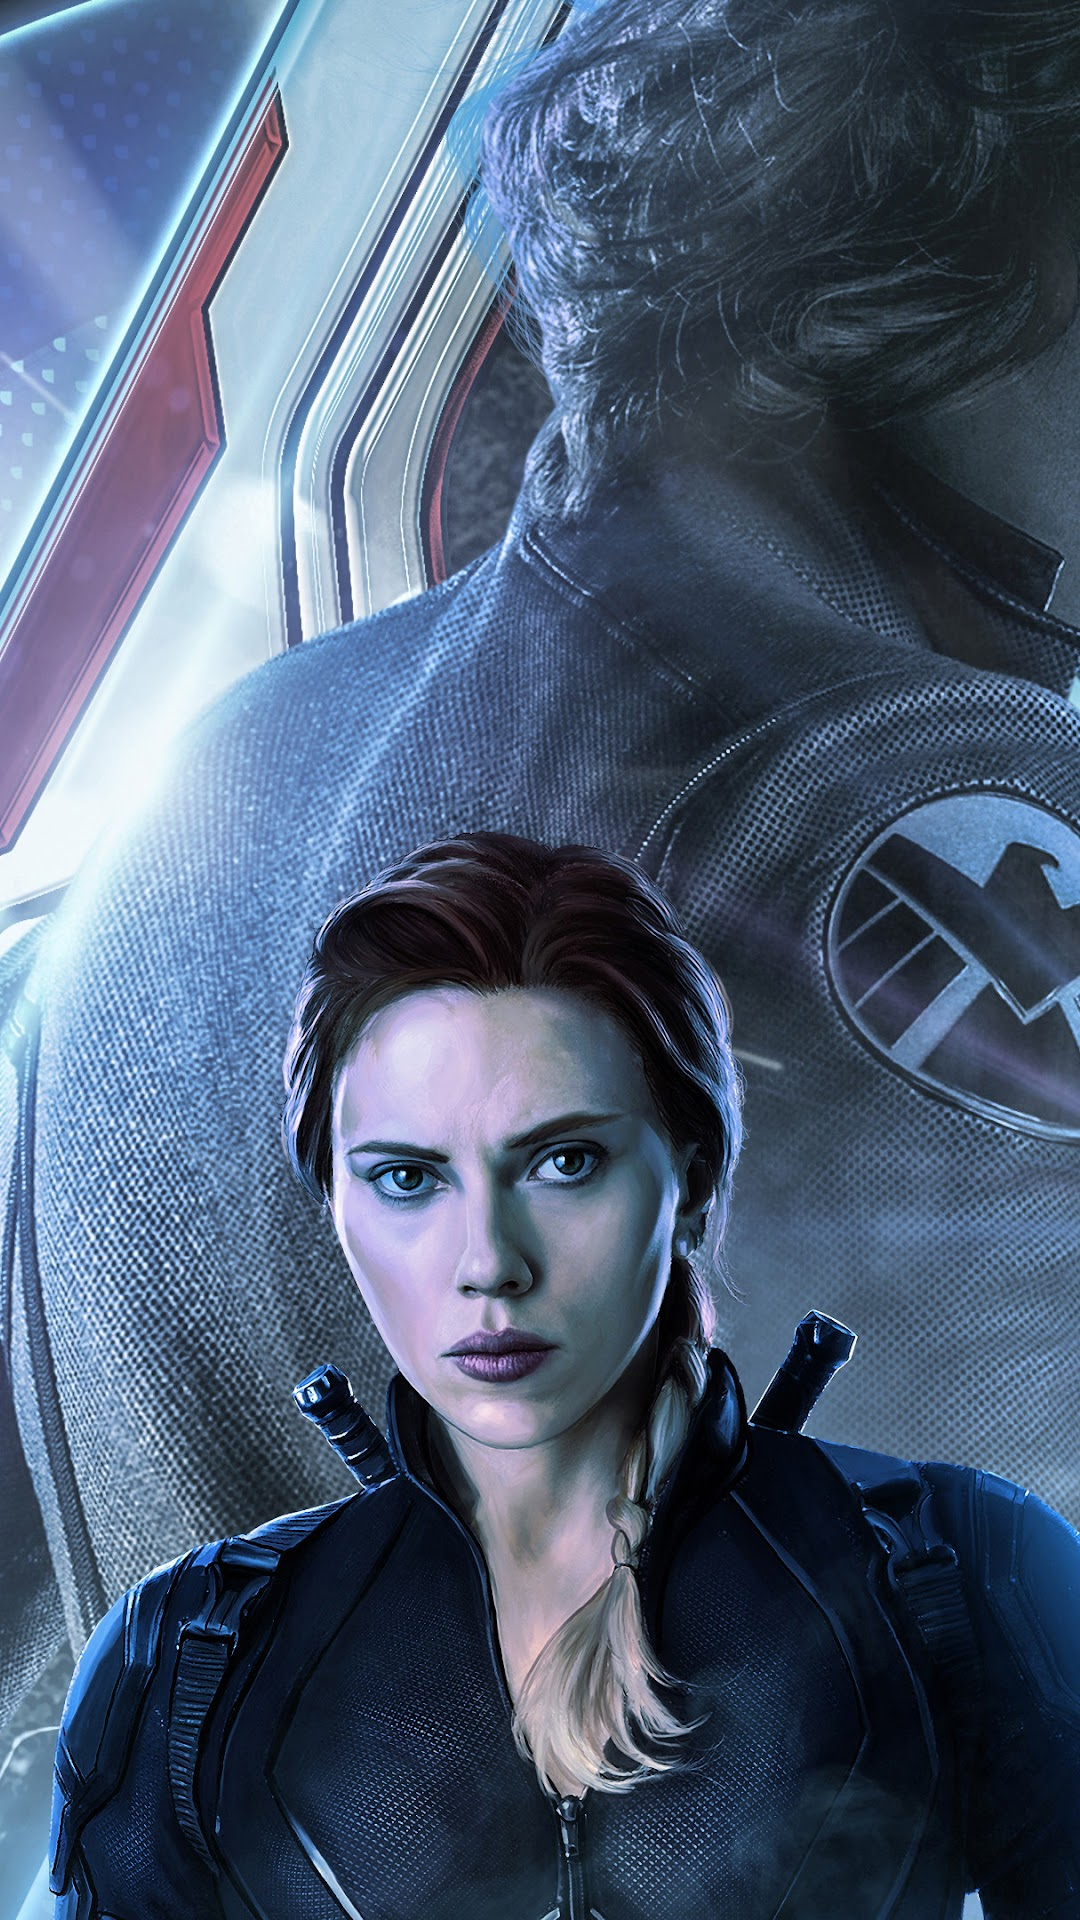 Download Avengers Endgame Black Widow Wallpaper Iphone